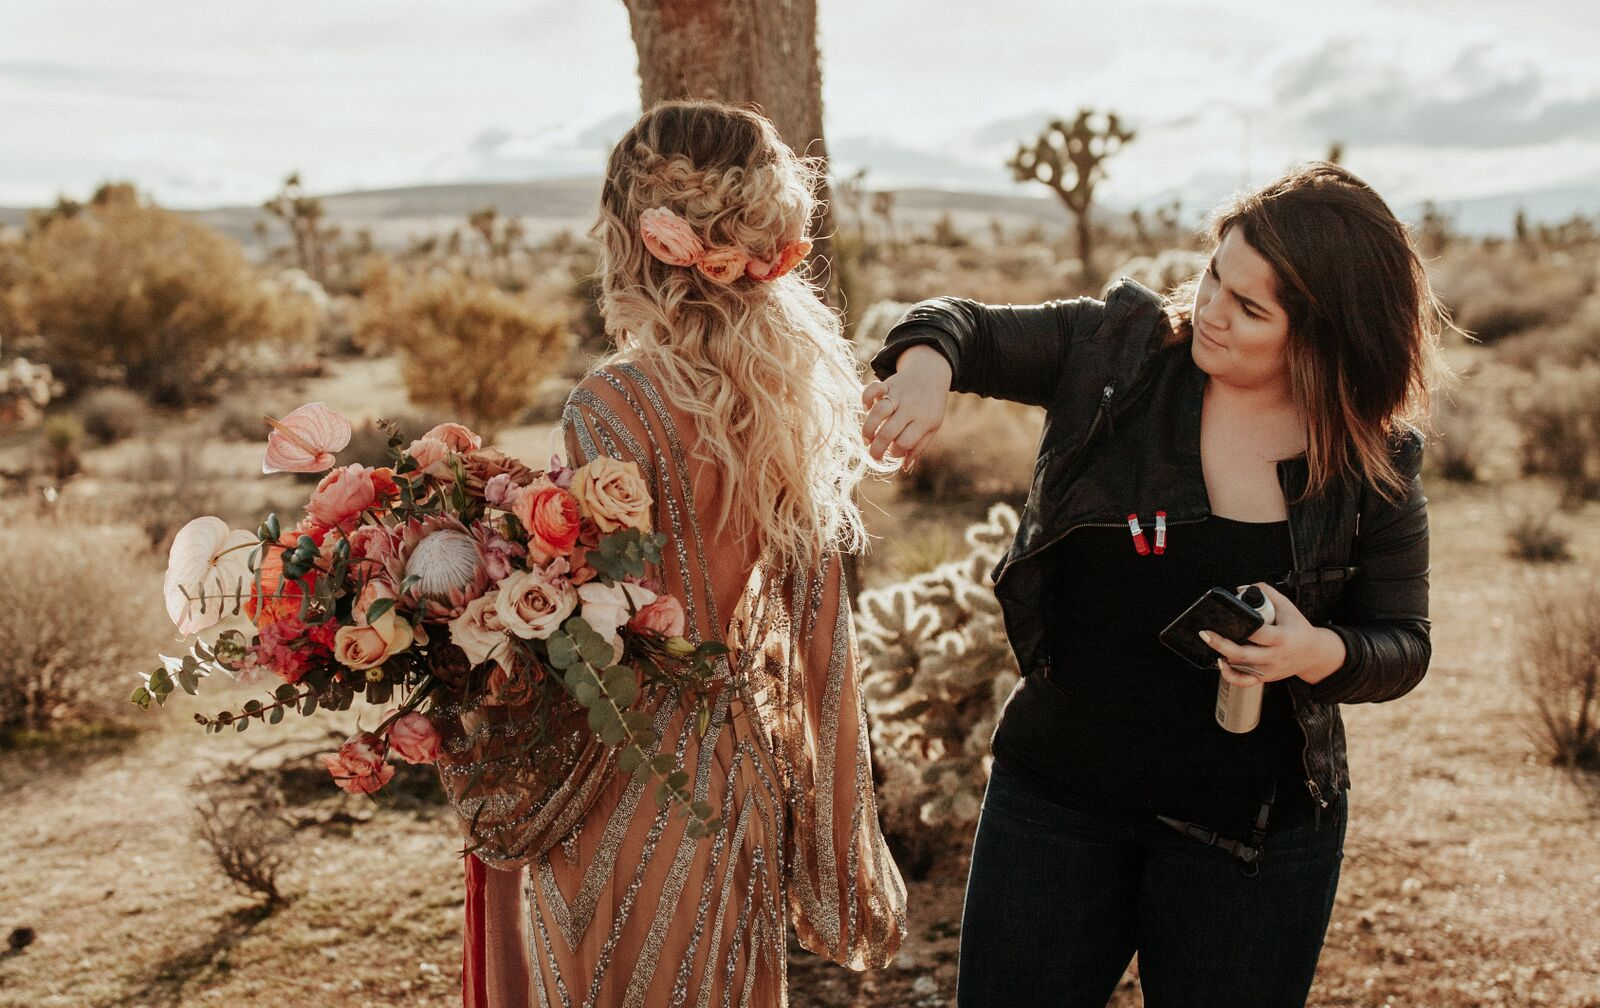 Outdoor photo shoot with engaged bohemian bride with hair stylist holding sustainable and organic peach flower bouquetOutdoor photo shoot with engaged bohemian bride with hair stylist holding sustainable and organic peach flower bouquet